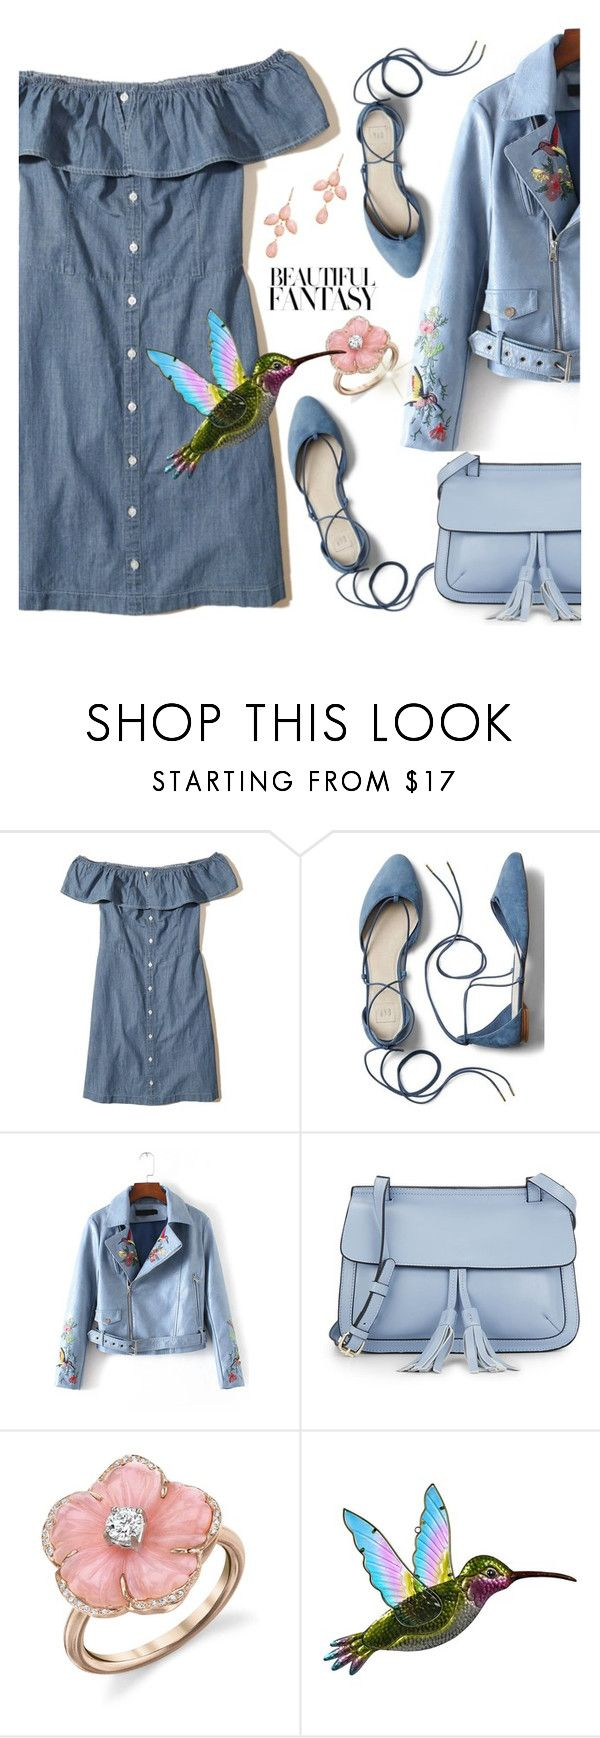 """""""Beautiful Fantasy."""" by tjclay3 ❤ liked on Polyvore featuring Hollister Co., Gap, WithChic, KC Jagger, Irene Neuwirth, Rina Limor, Pink, Blue and beautifulfantasy"""